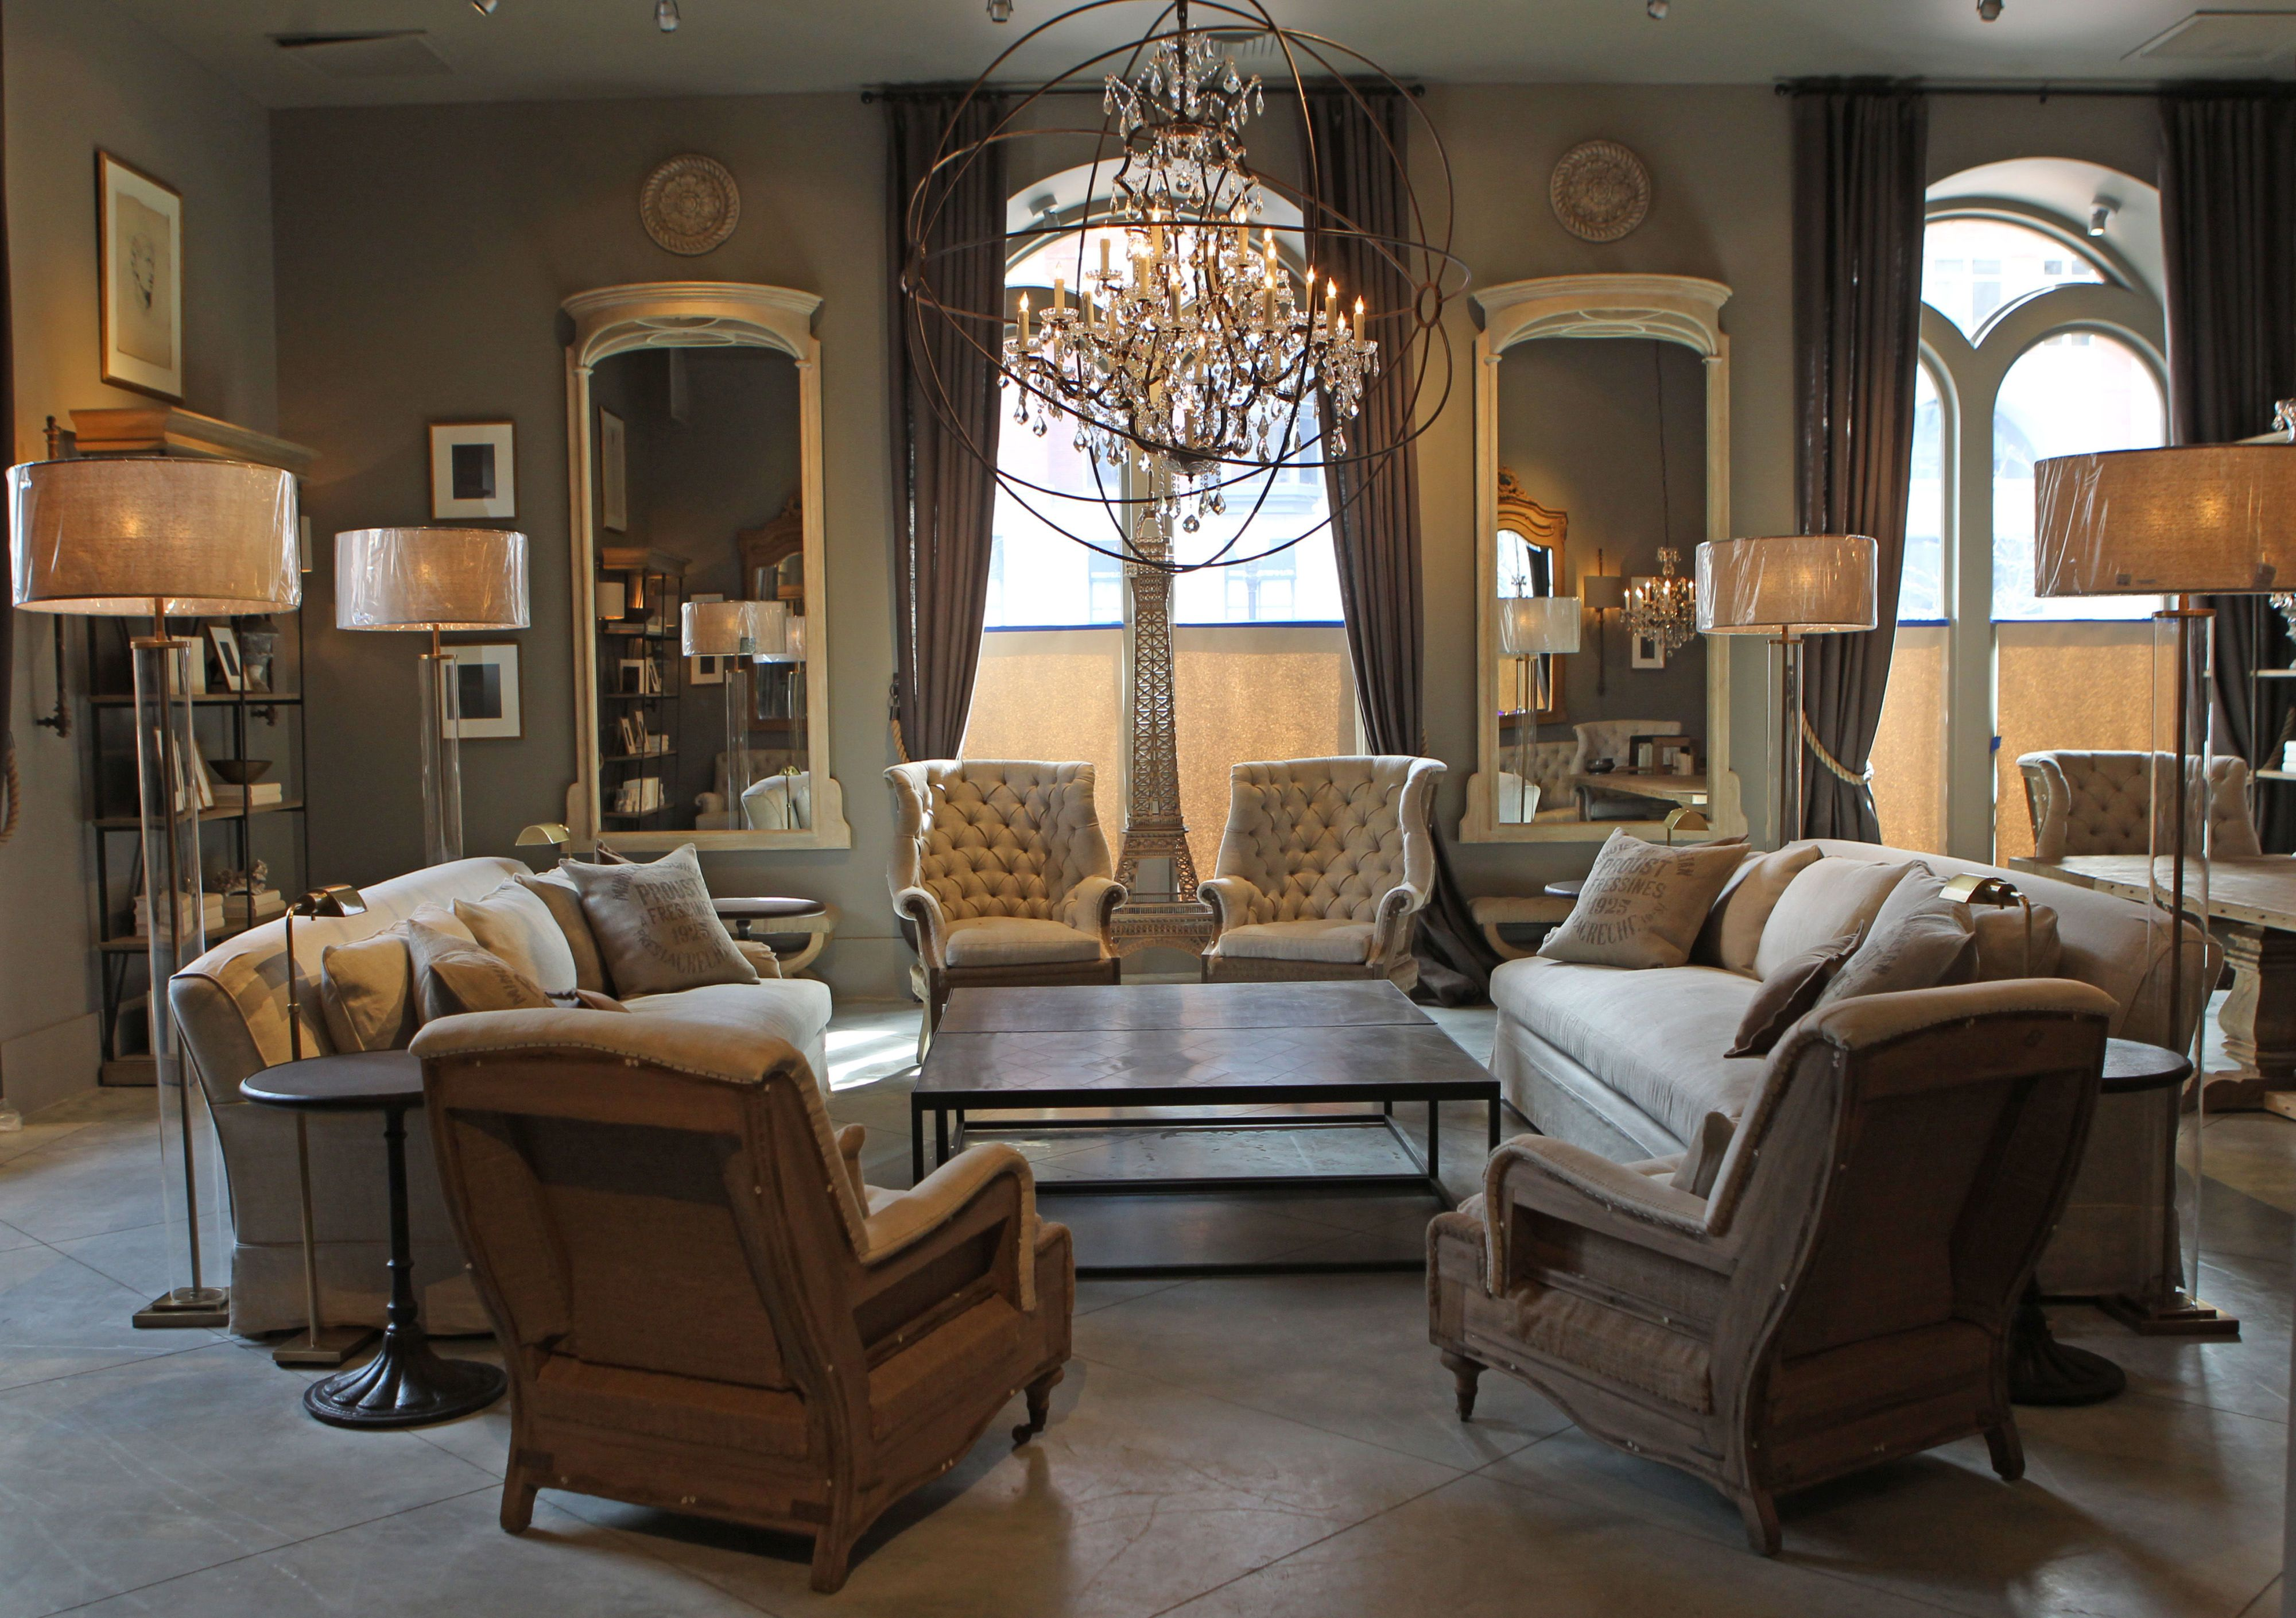 Restoration Hardware Is Launching A Line For Teens